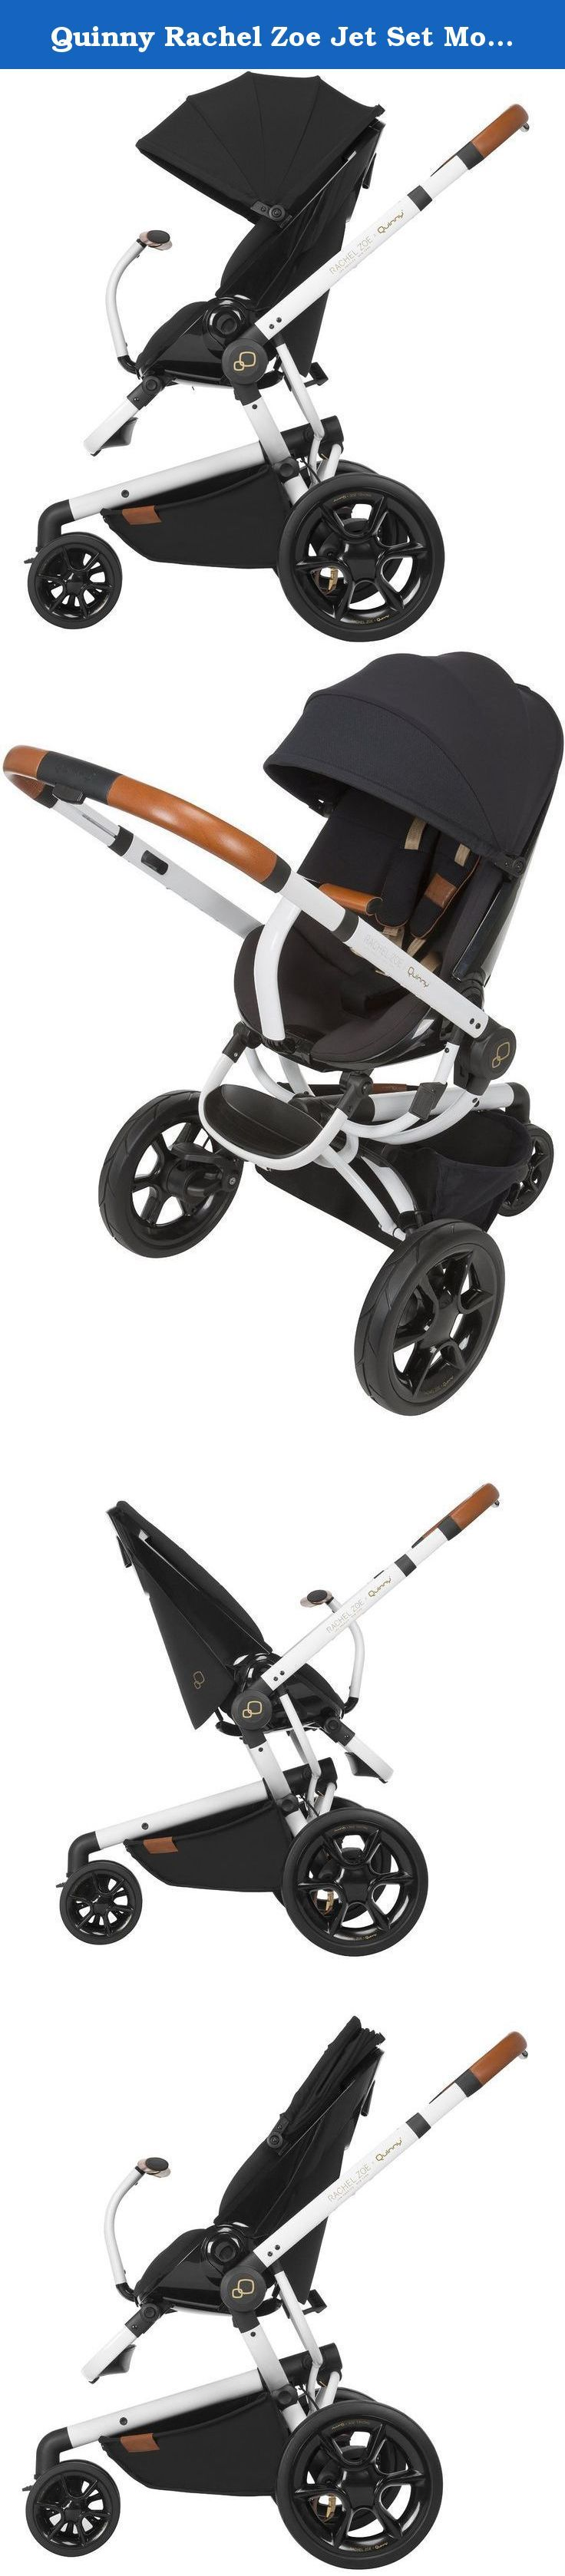 1000 Ideas About Diaper Stroller On Pinterest Diaper Cakes Diaper Carriage And Diaper Bassinet